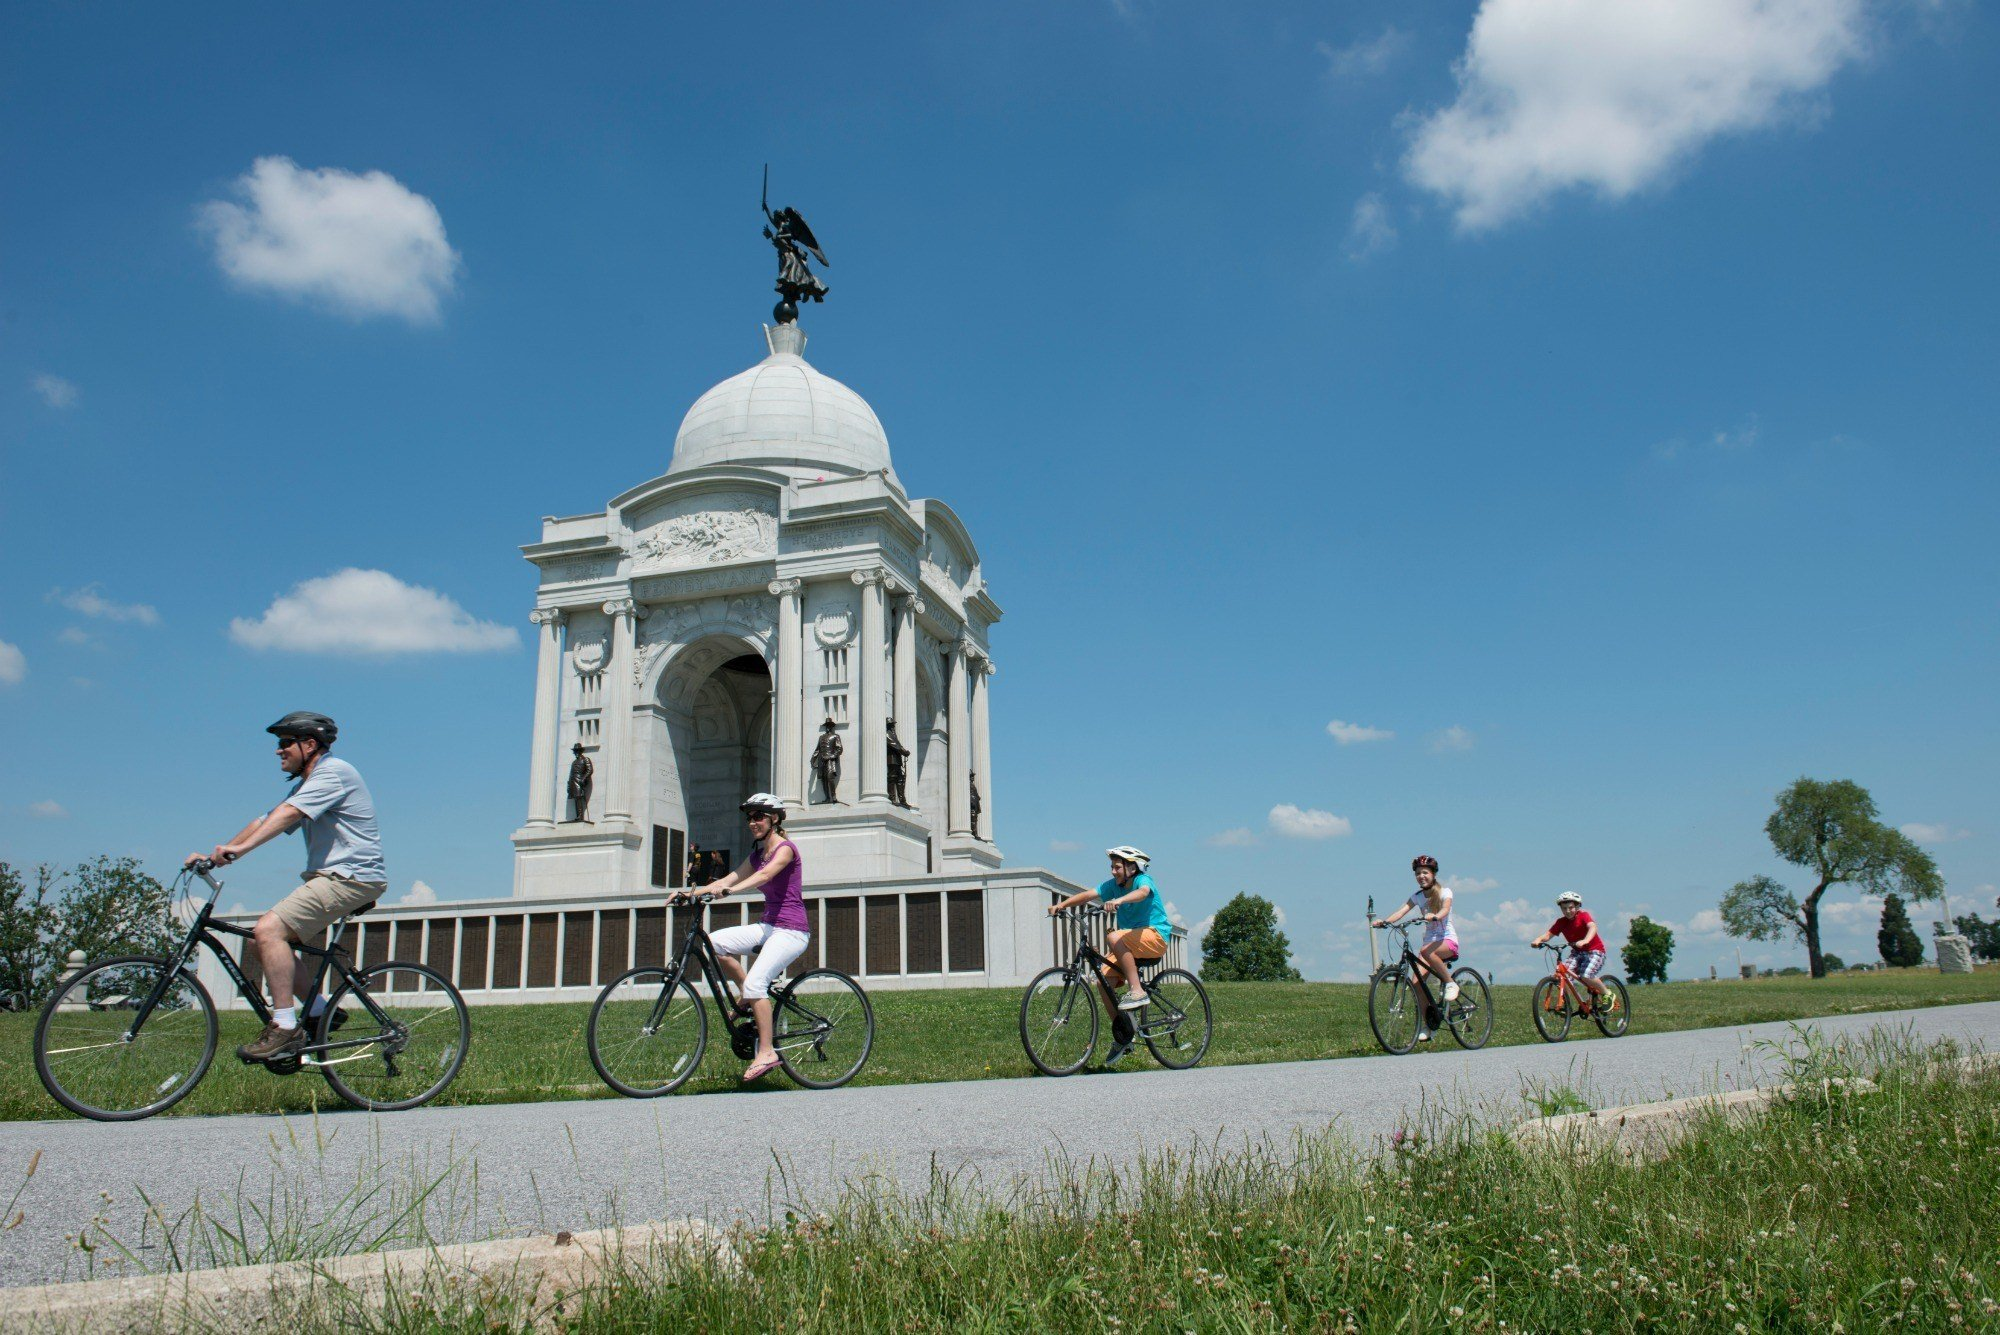 A family bike tour is a popular thing to do in Gettysburg with kids